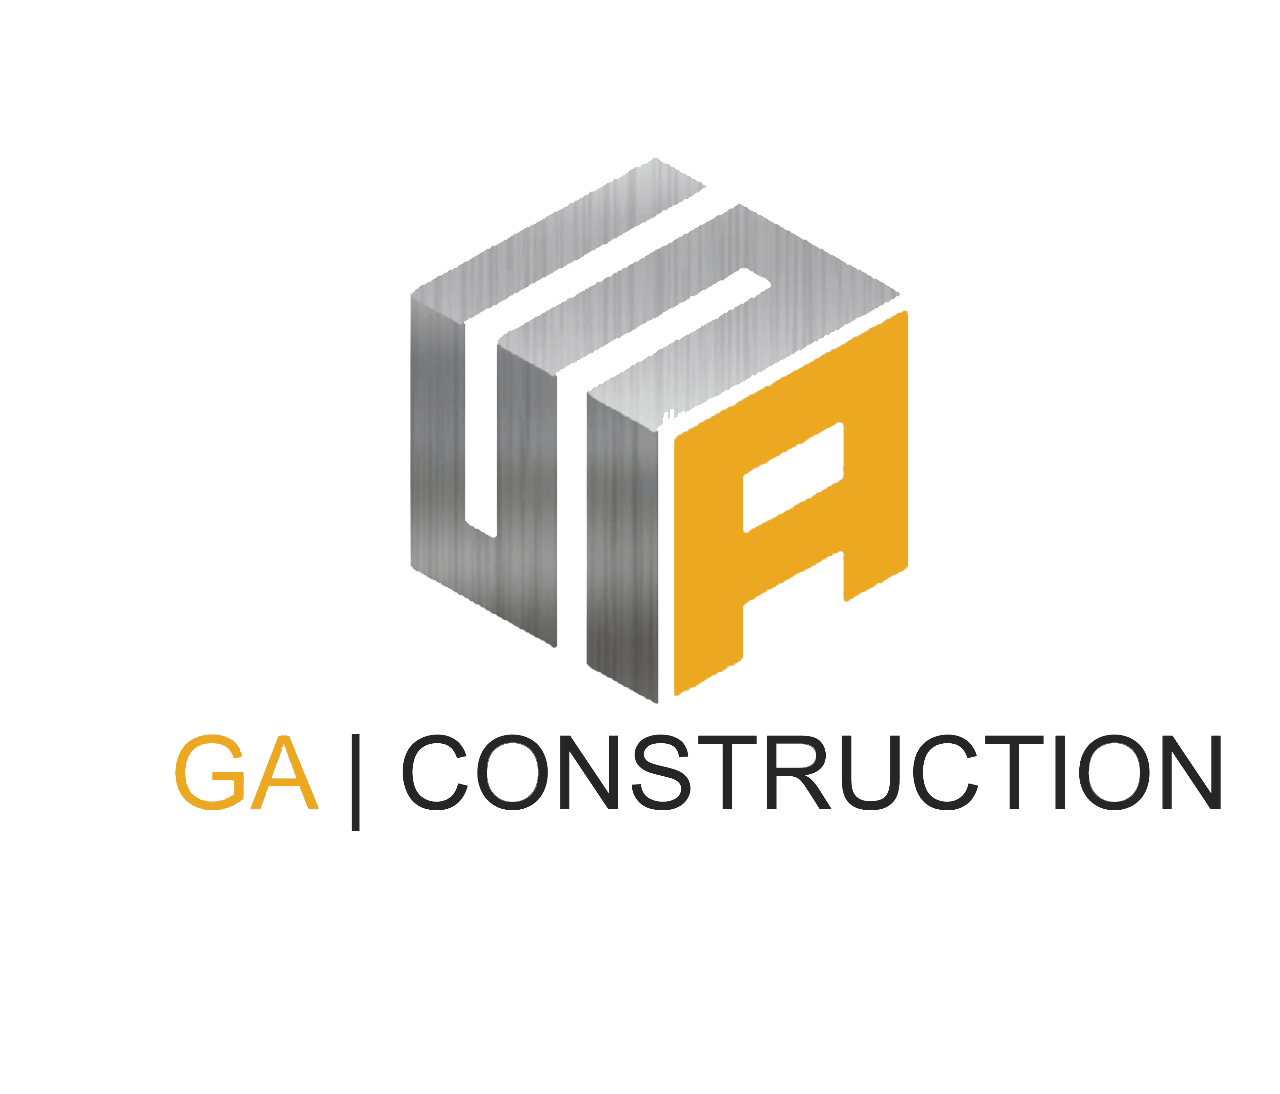 ga construction company